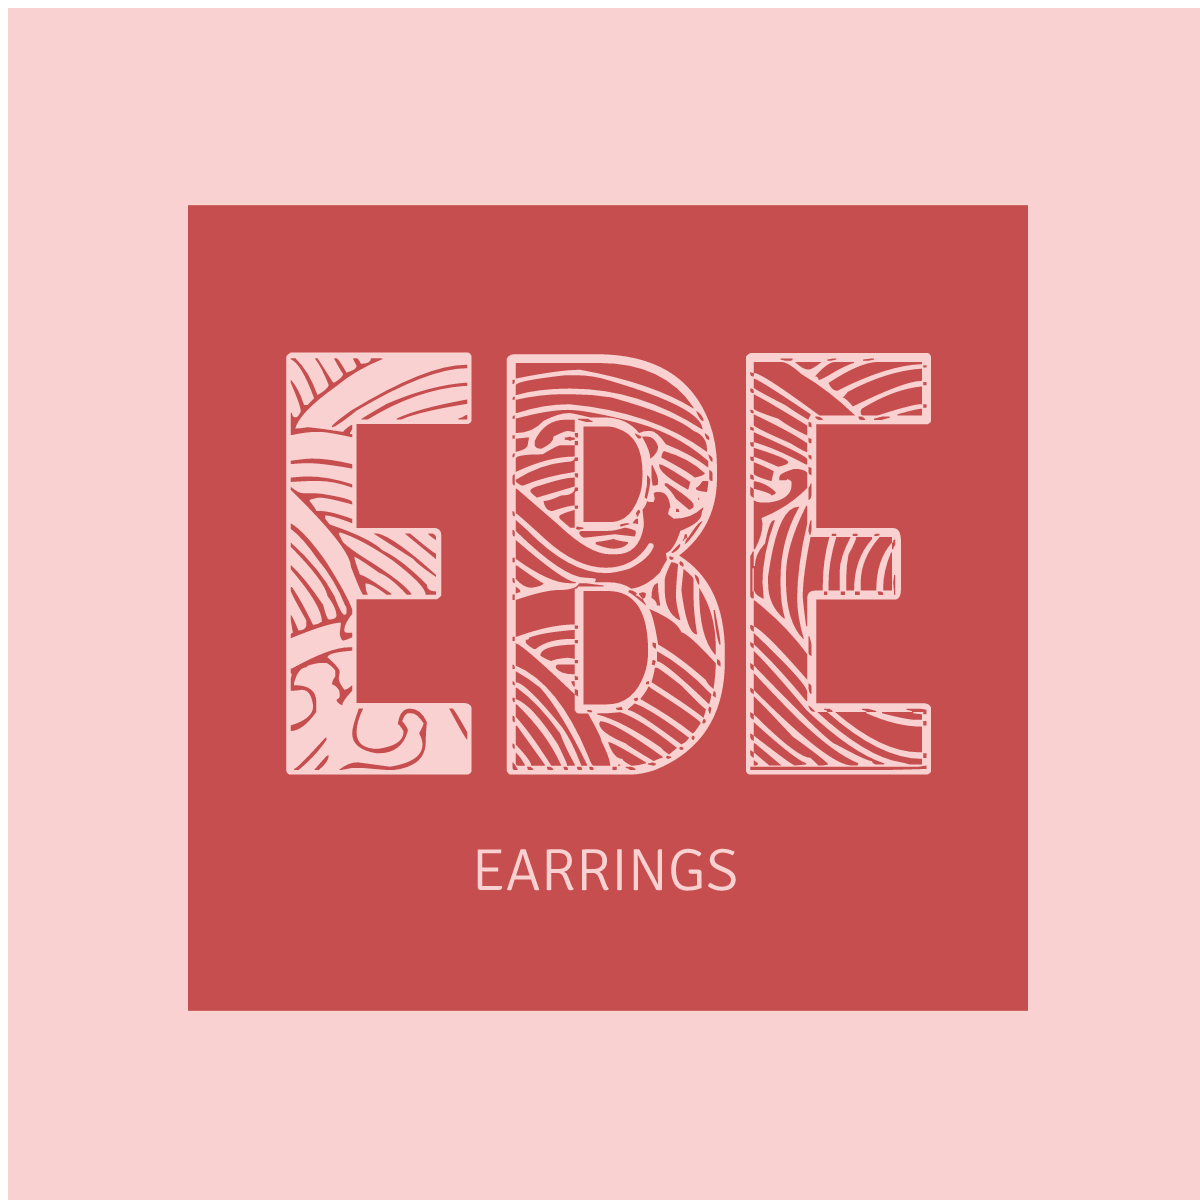 EBE earrings